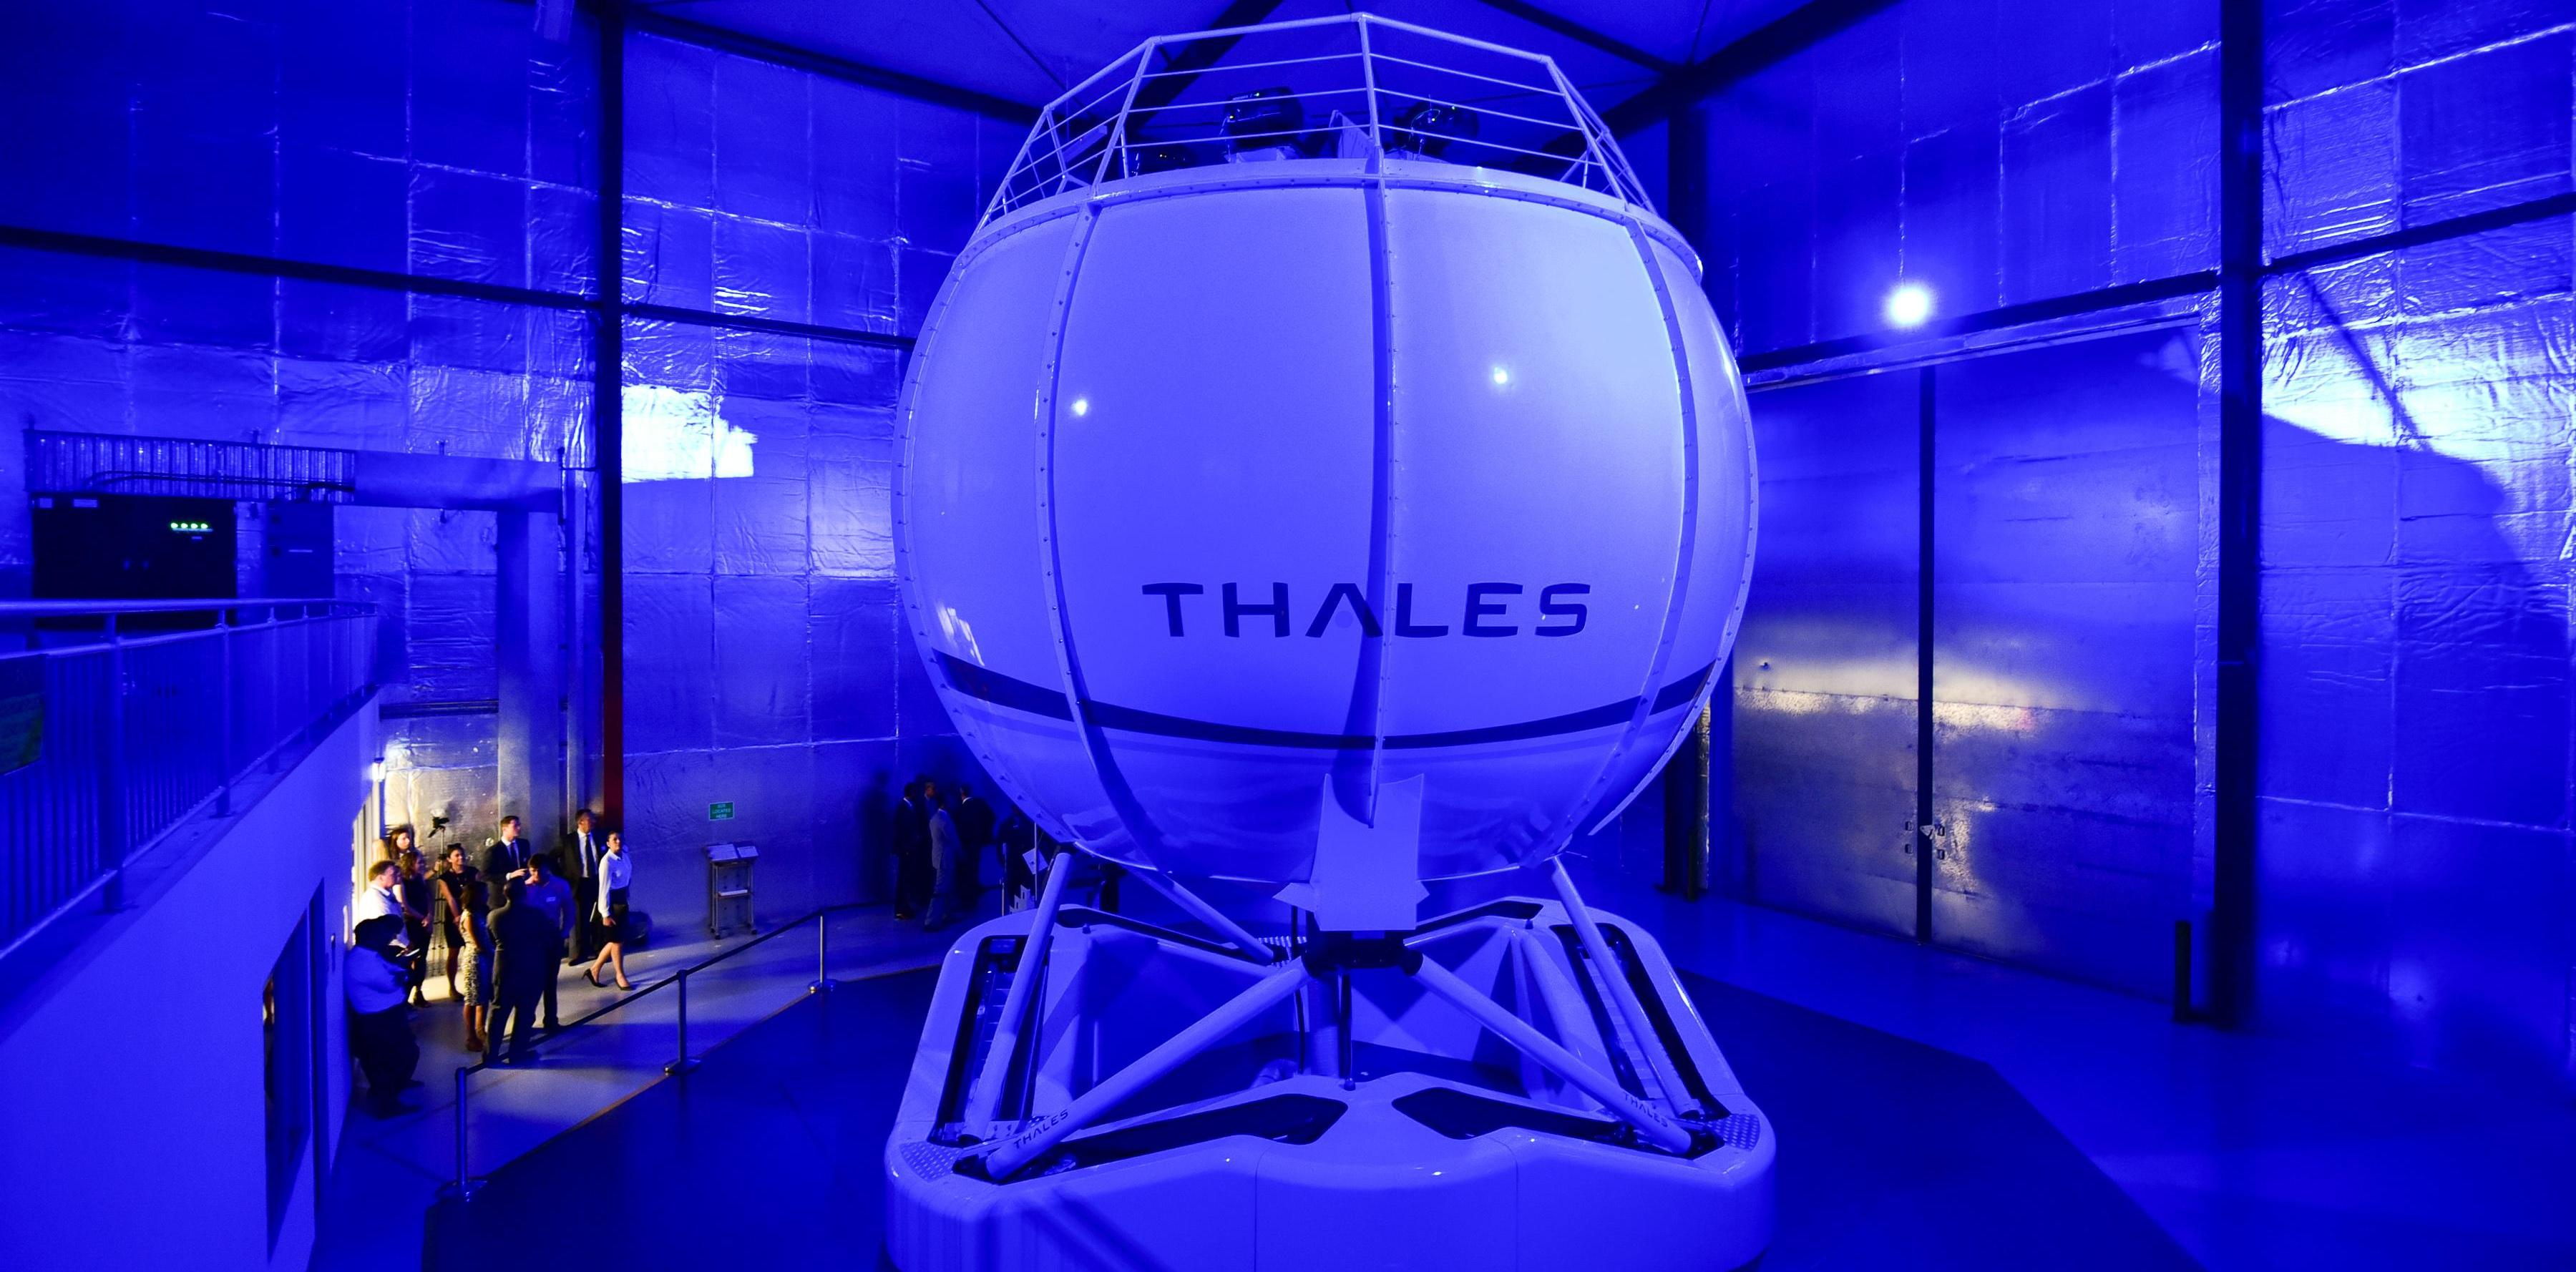 AW139 helicopter full flight simulator receives level D qualification from EASA